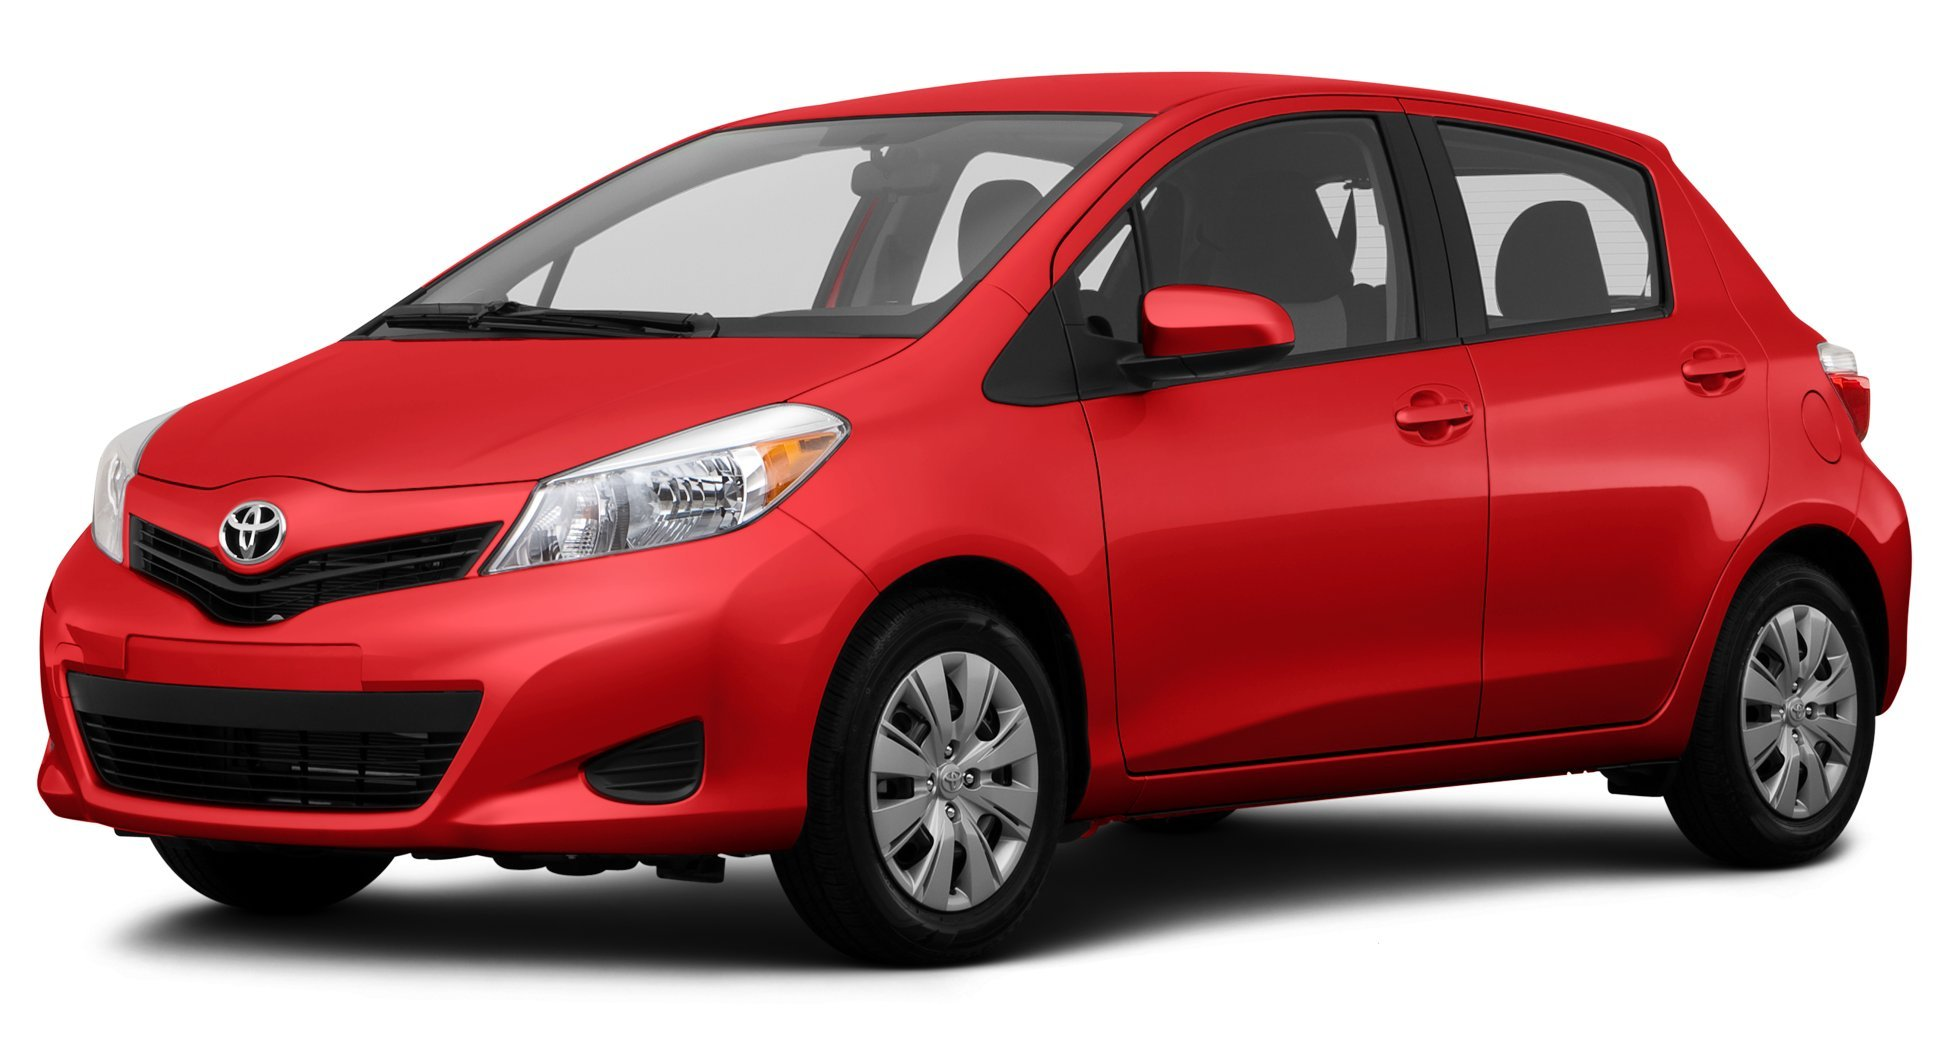 Amazon 2014 Hyundai Accent Reviews and Specs Vehicles